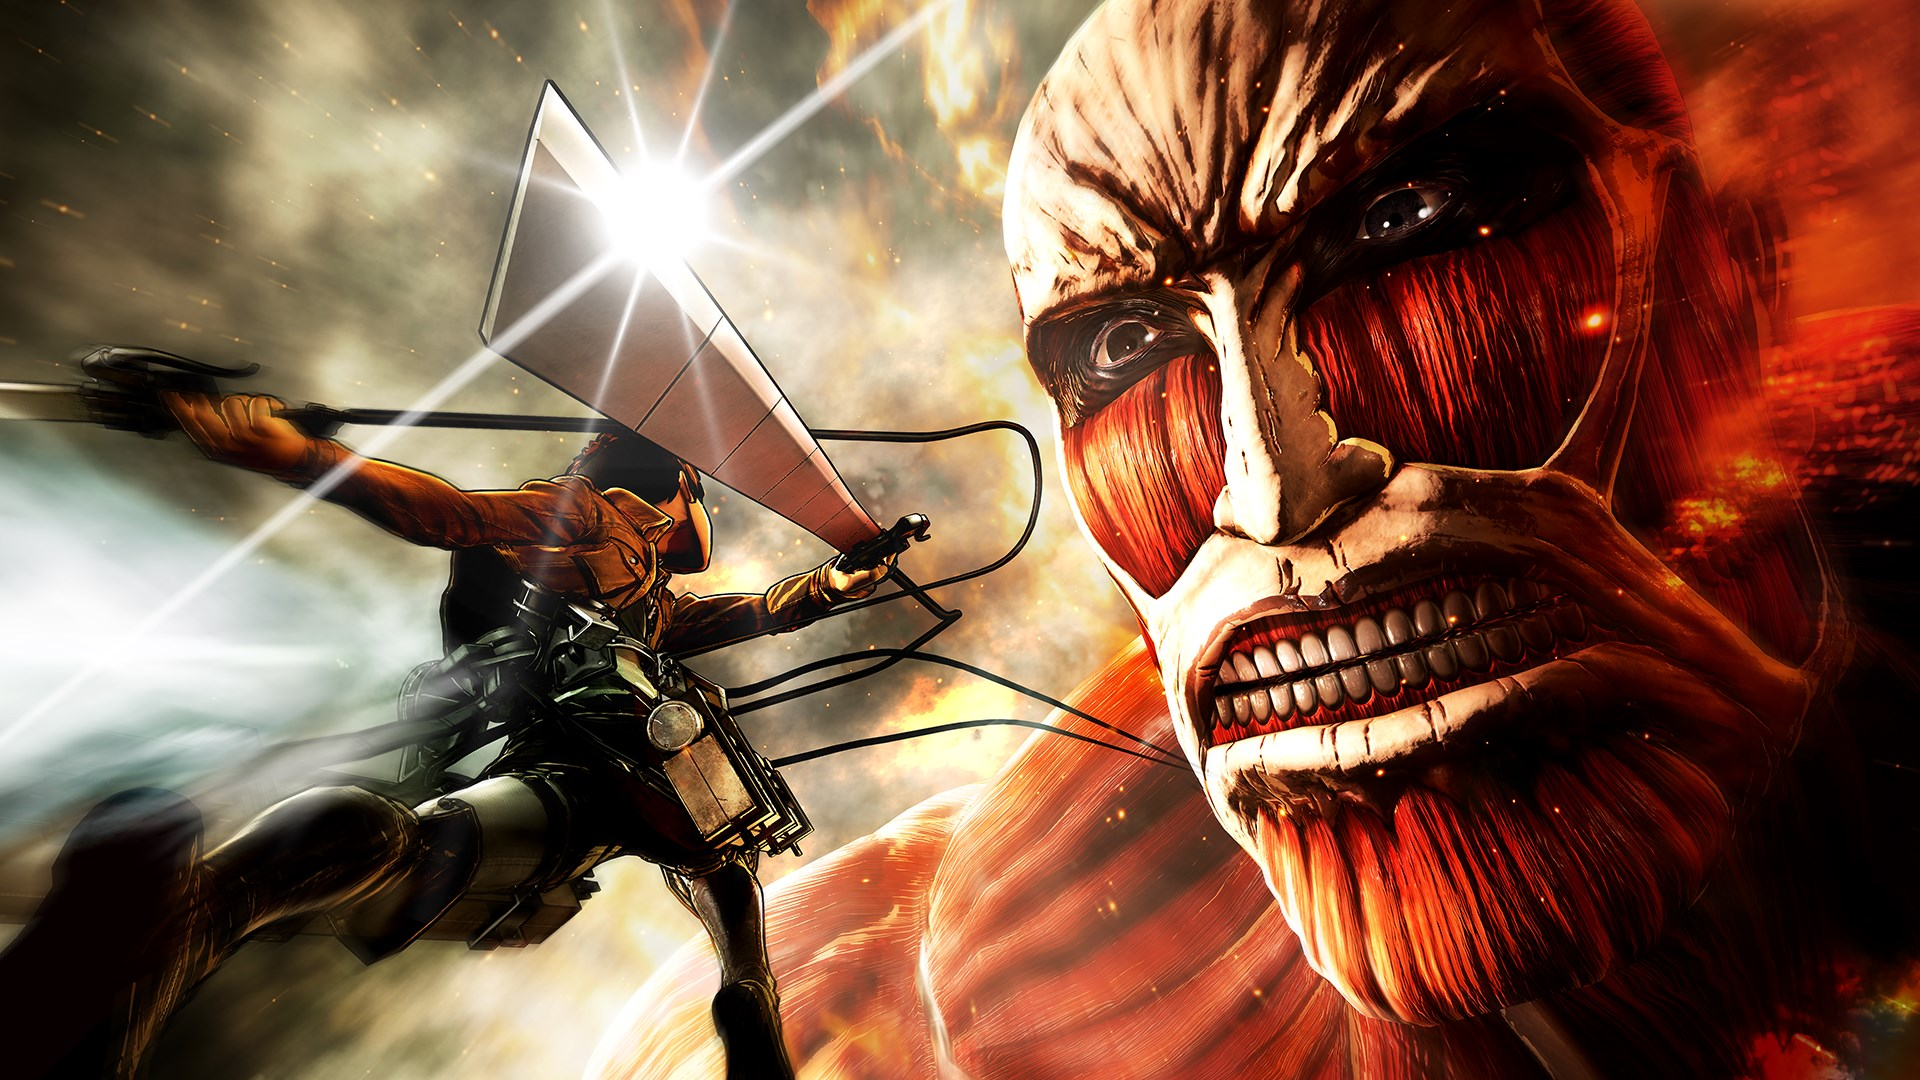 Attack on Titan Game Wallpaper